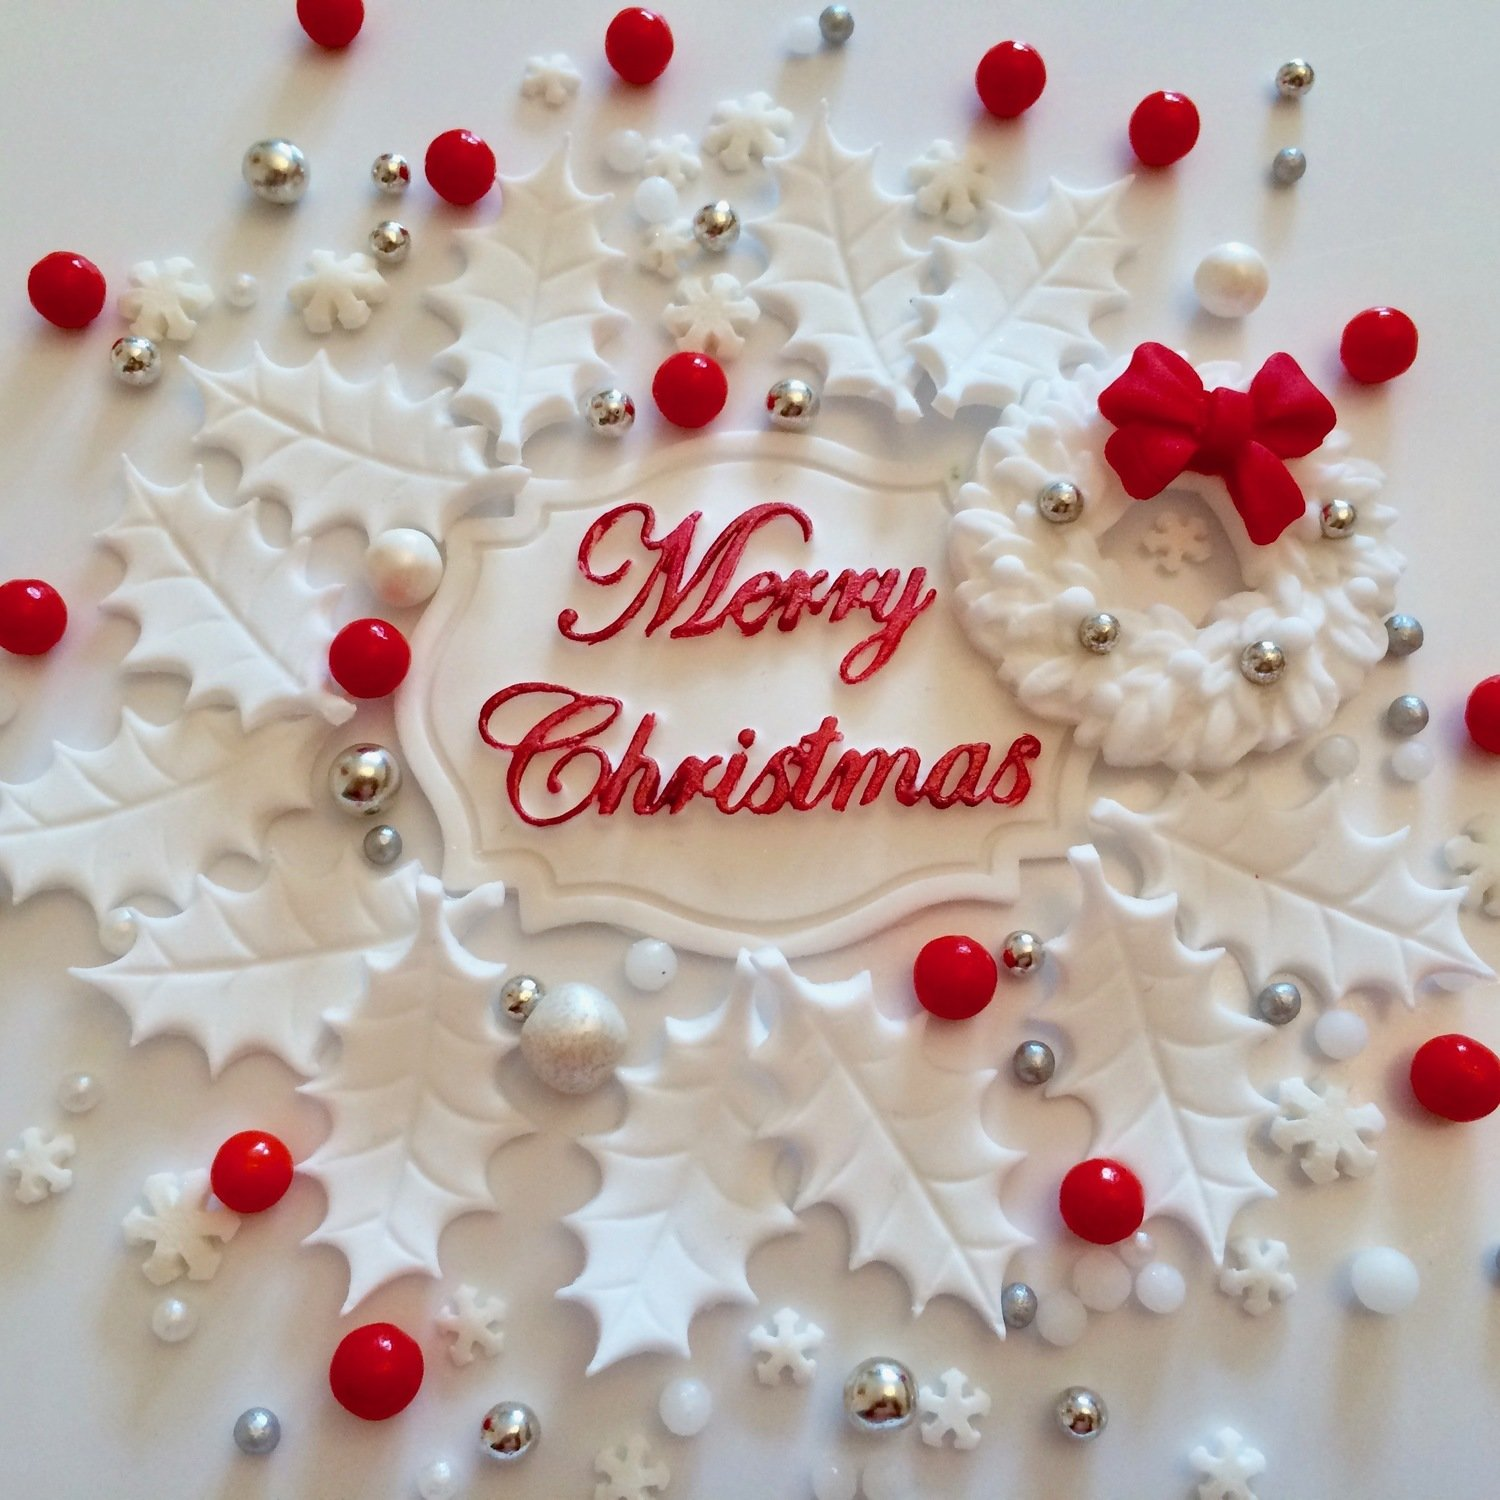 Merry Christmas Cake Decorations